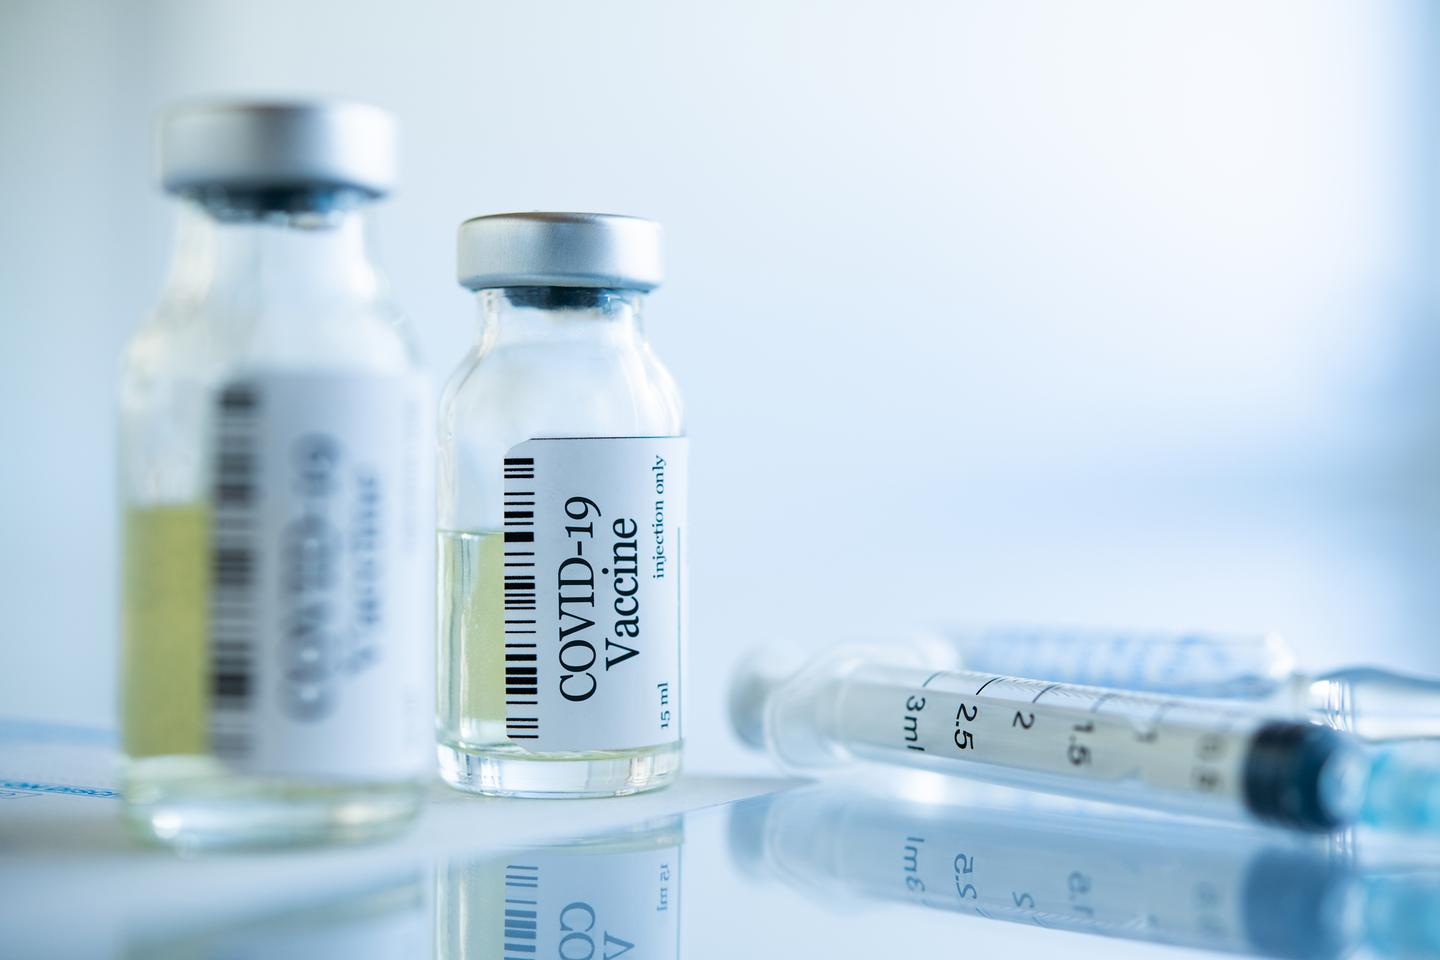 A third COVID-19 vaccine has received emergency use authorization by the FDA